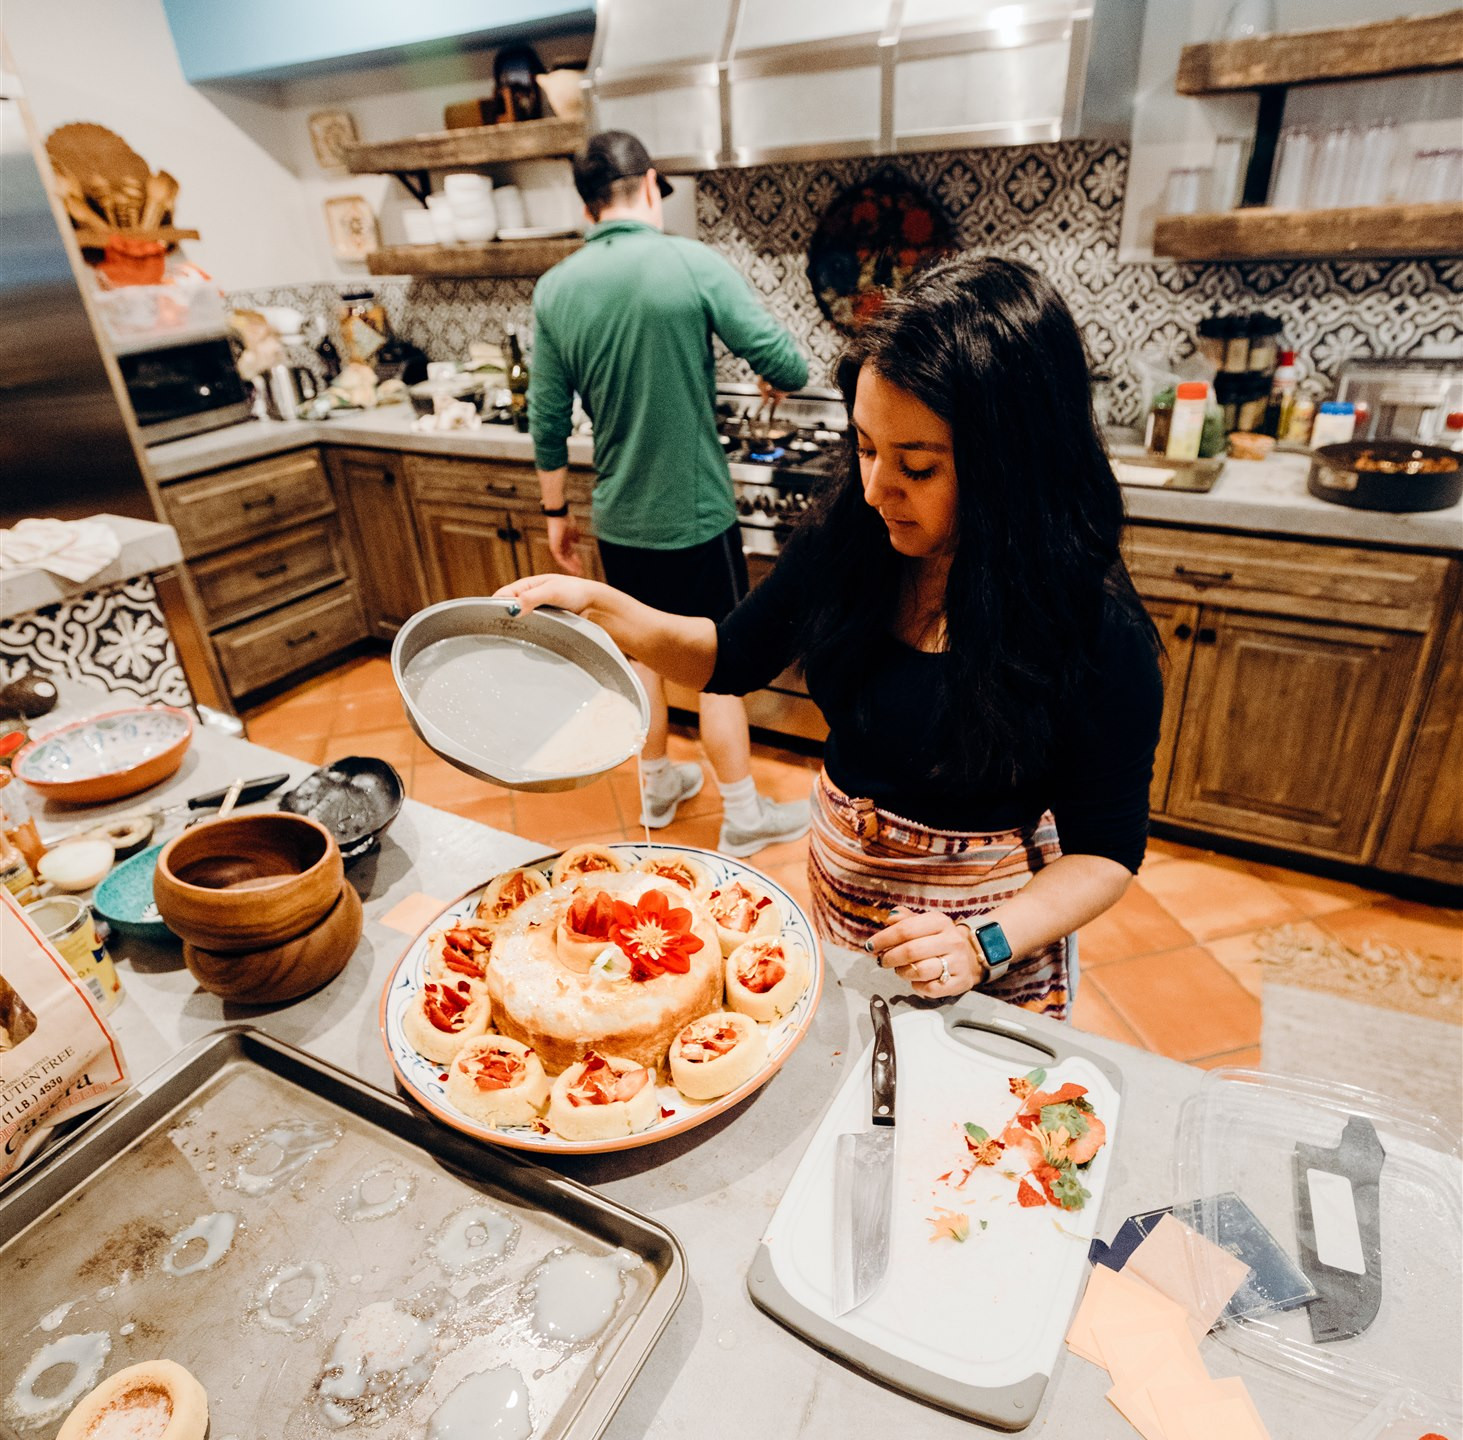 Mary-Beth from Heart of Celebration pouring delicious creamy goodness onto dessert with floral flowers that she has created, while in the kitchen working alongside her husband